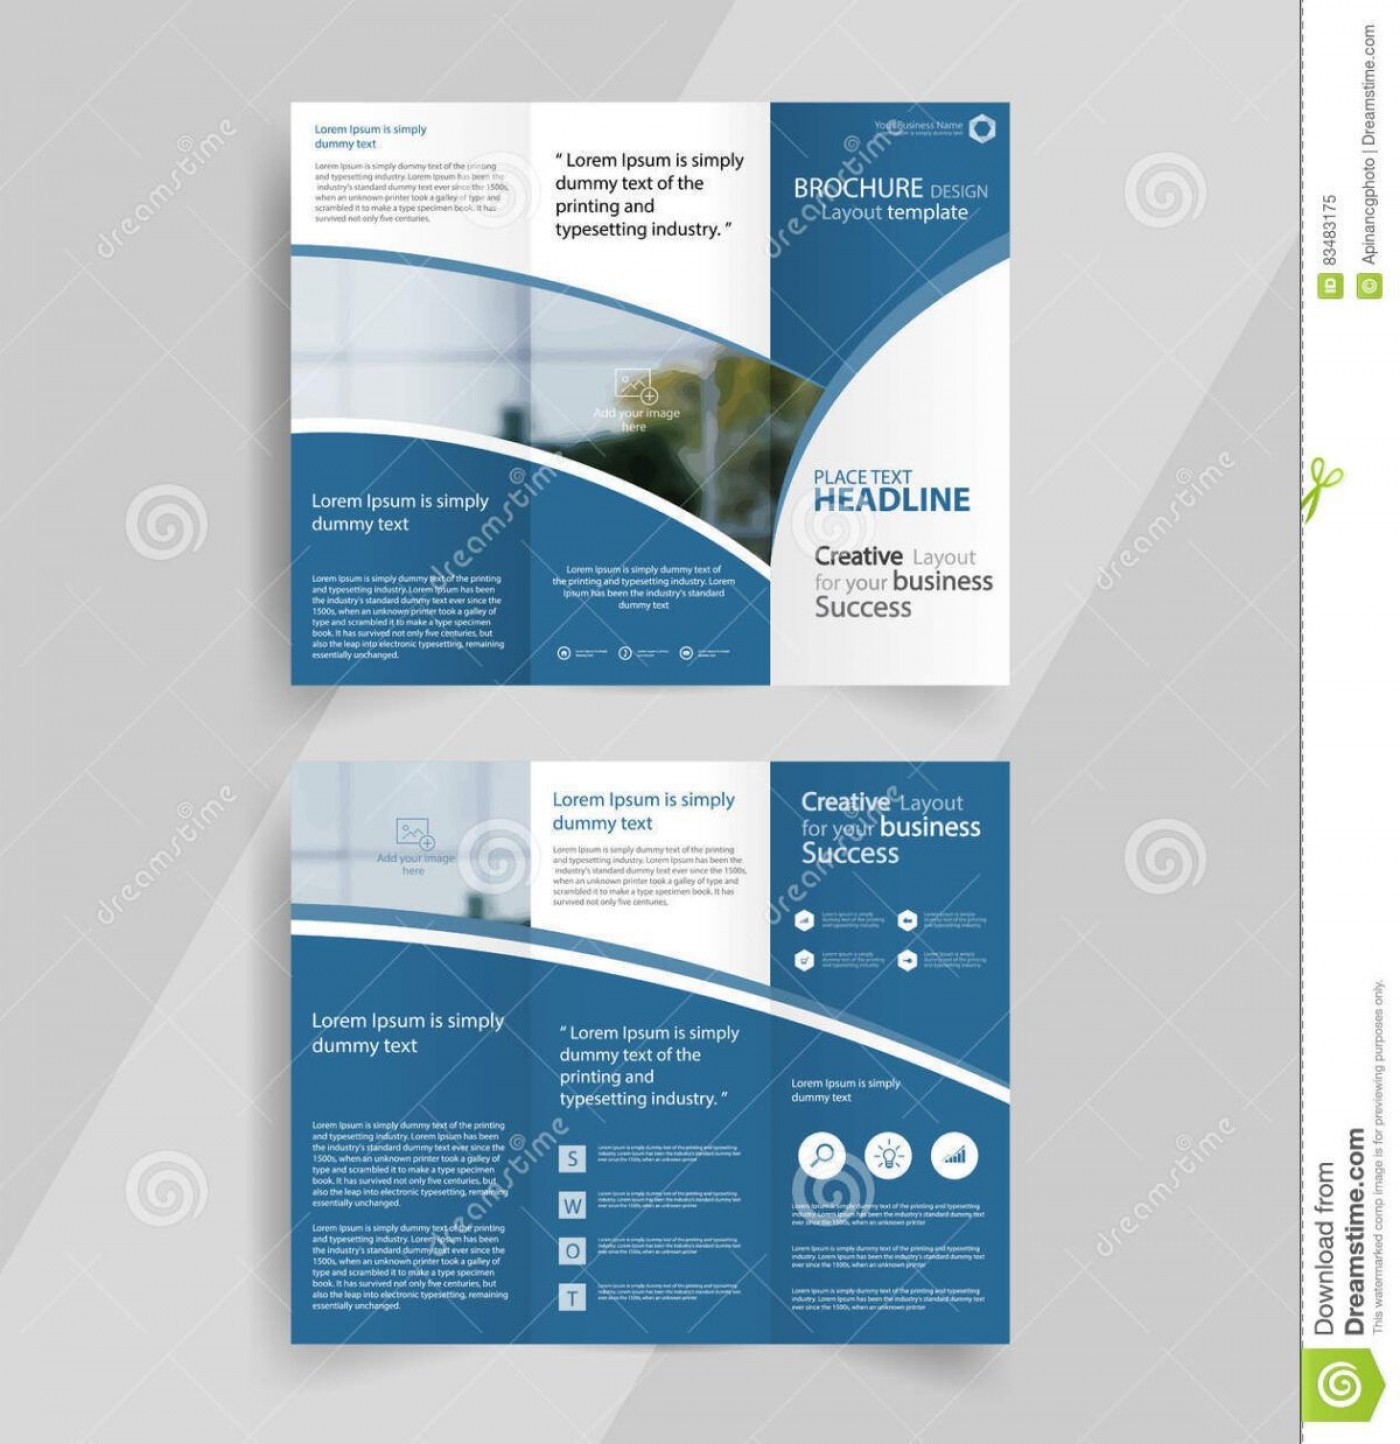 001 Fascinating Three Fold Brochure Template Free Download Highest Quality  3 Publisher Psd1400